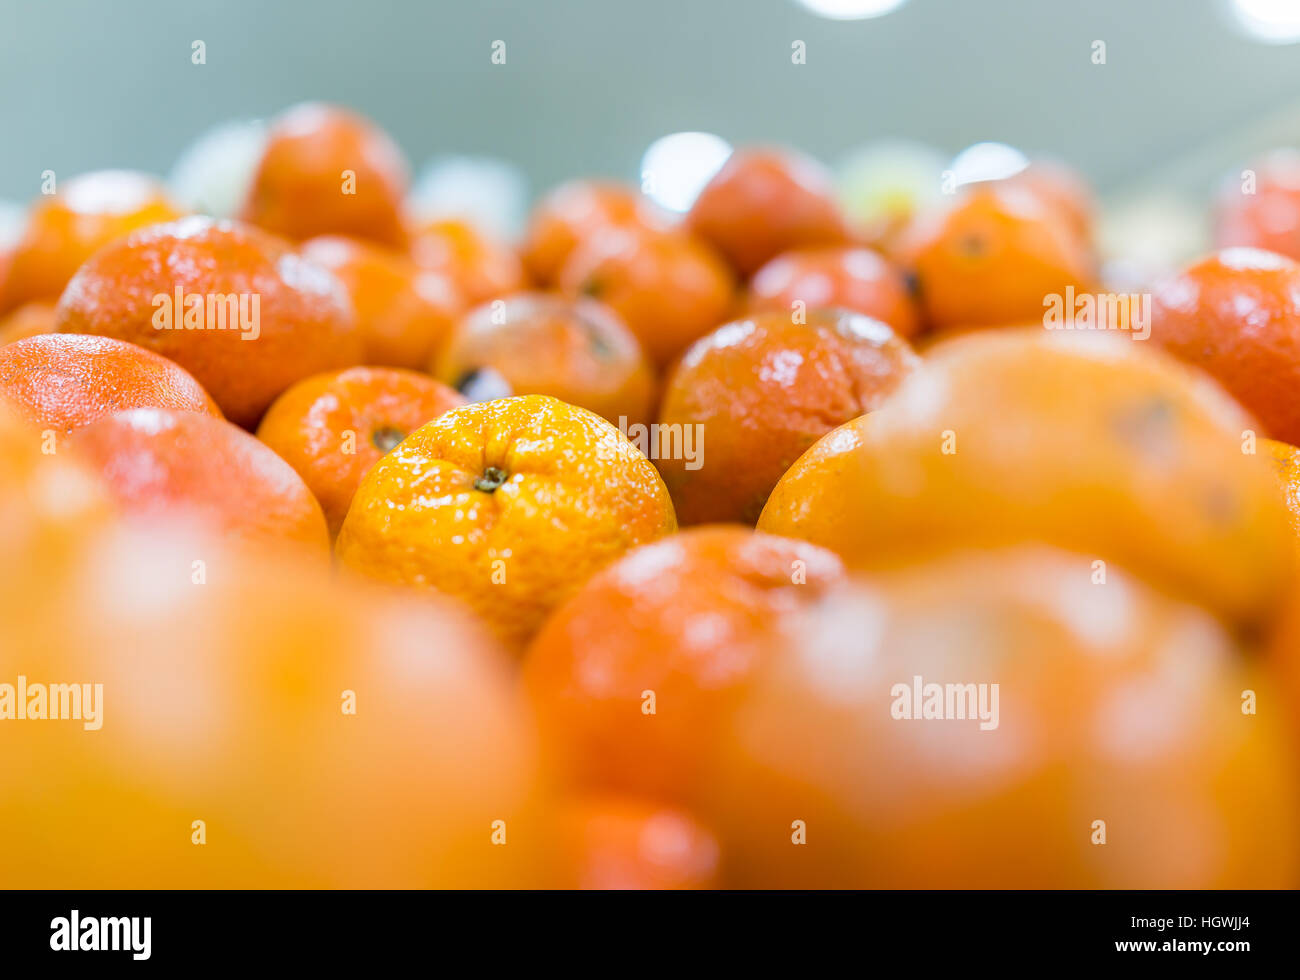 Macro closeup of display of many tangerine oranges in store - Stock Image